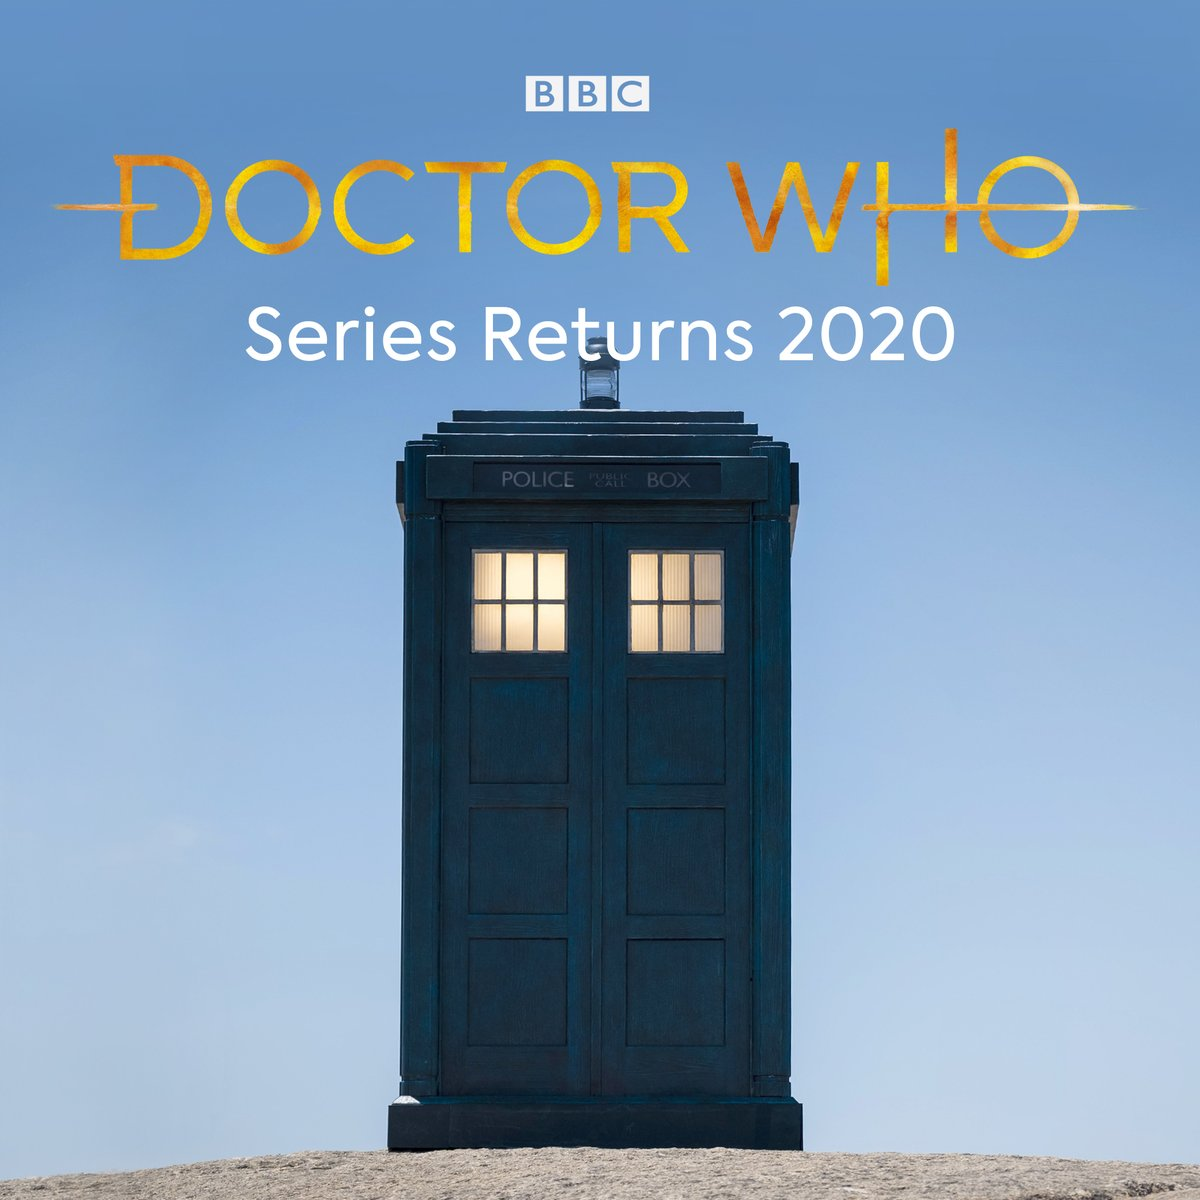 Series 12 to air in 2012